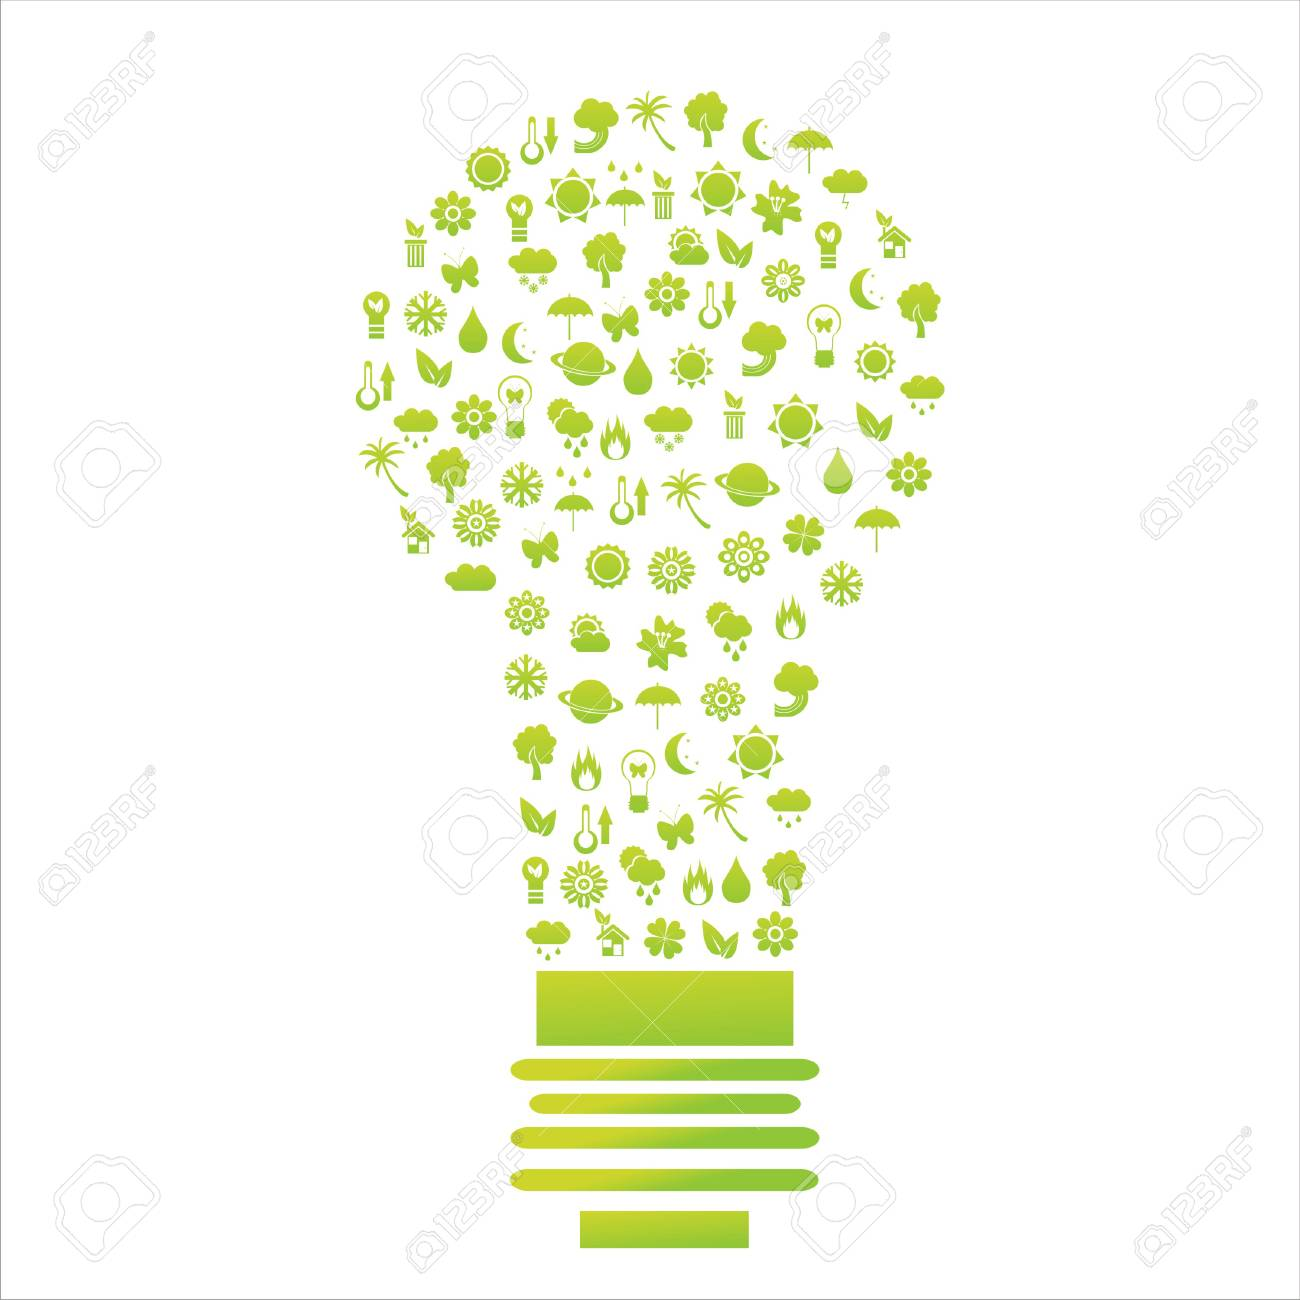 ecological lamp made of icons Stock Vector - 9082964